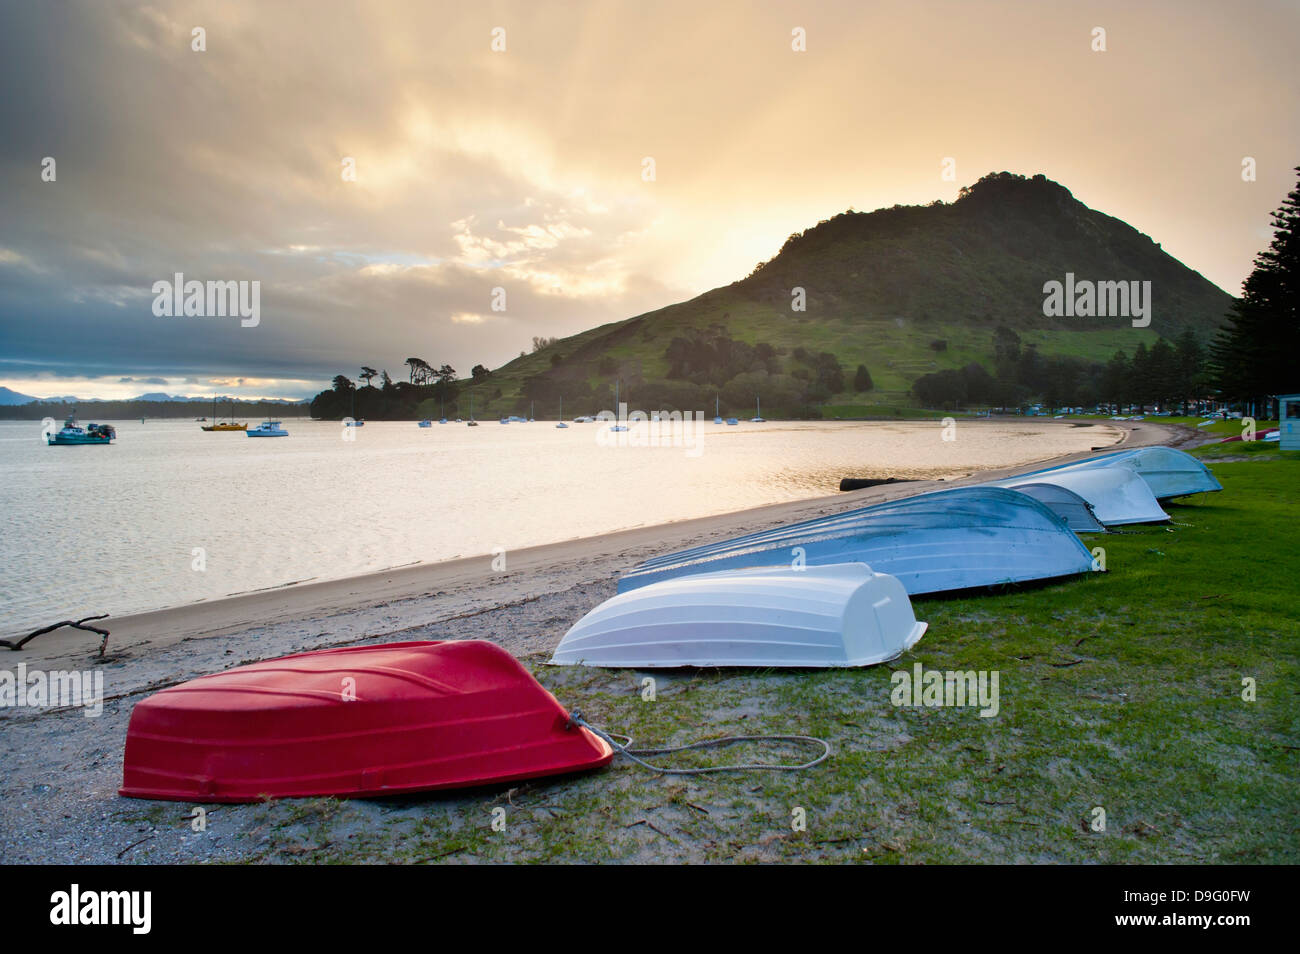 Boats at Mount Maunganui at sunset, Tauranga, North Island, New Zealand - Stock Image